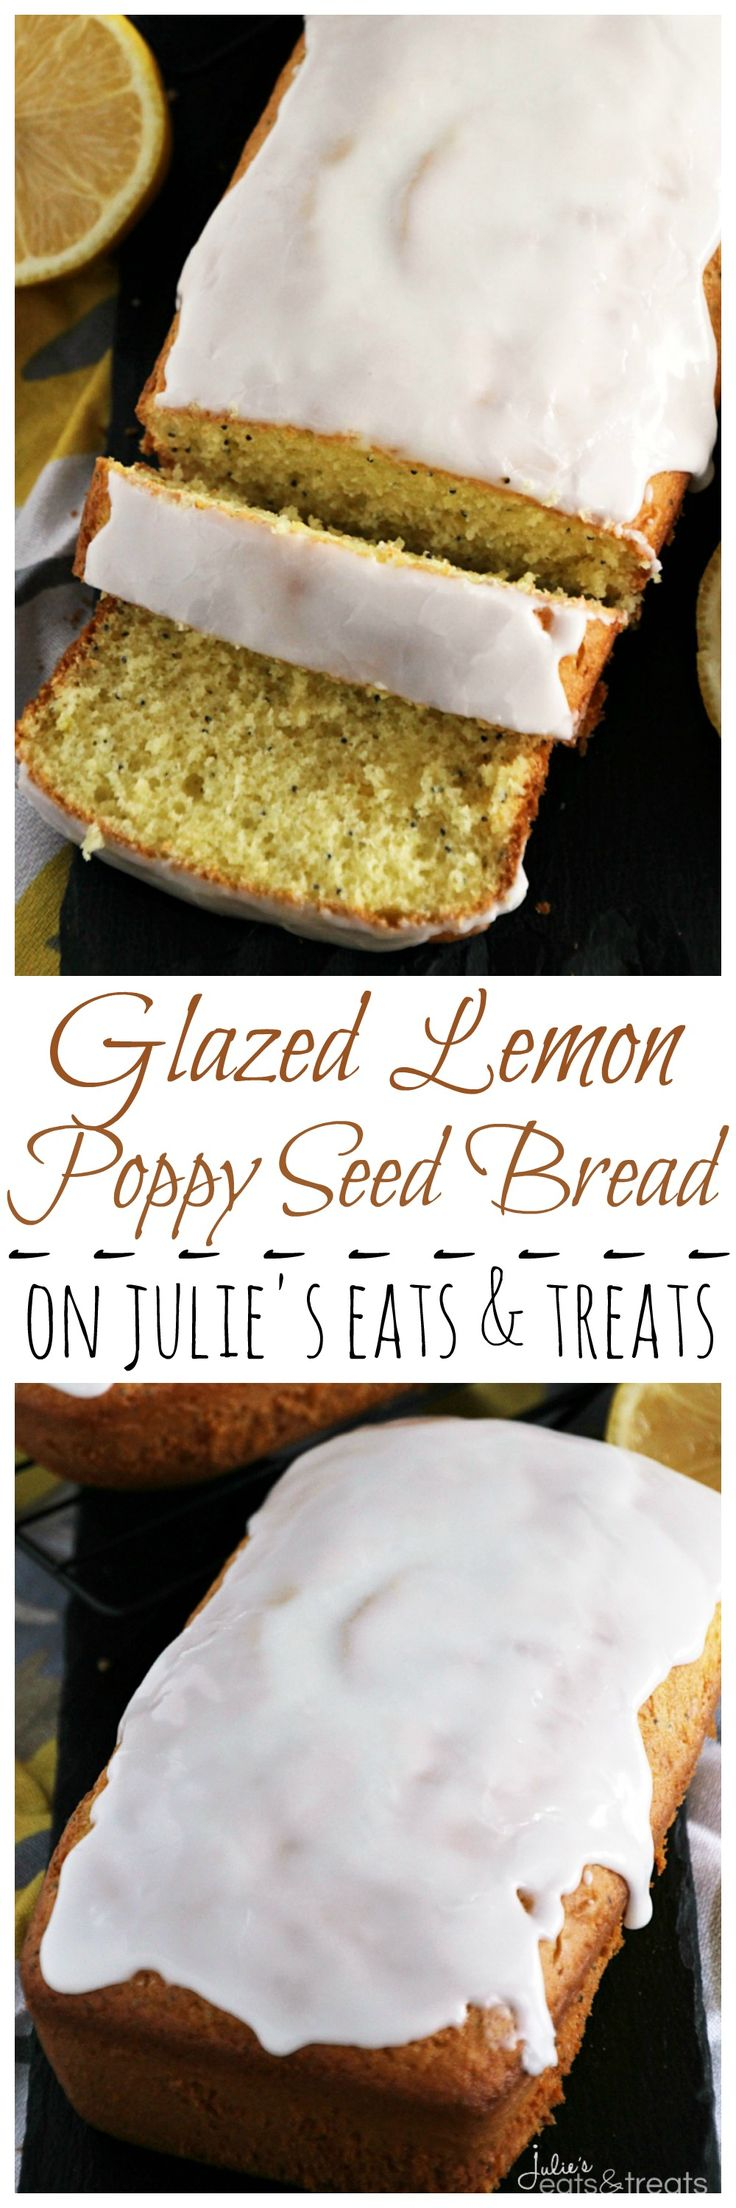 Glazed Lemon Poppy Seed Bread ~ Quick & Easy Lemon Bread with Poppy Seeds! Topped off with a Delicious Lemon Glaze! ~ http://www.julieseatsandtreats.com